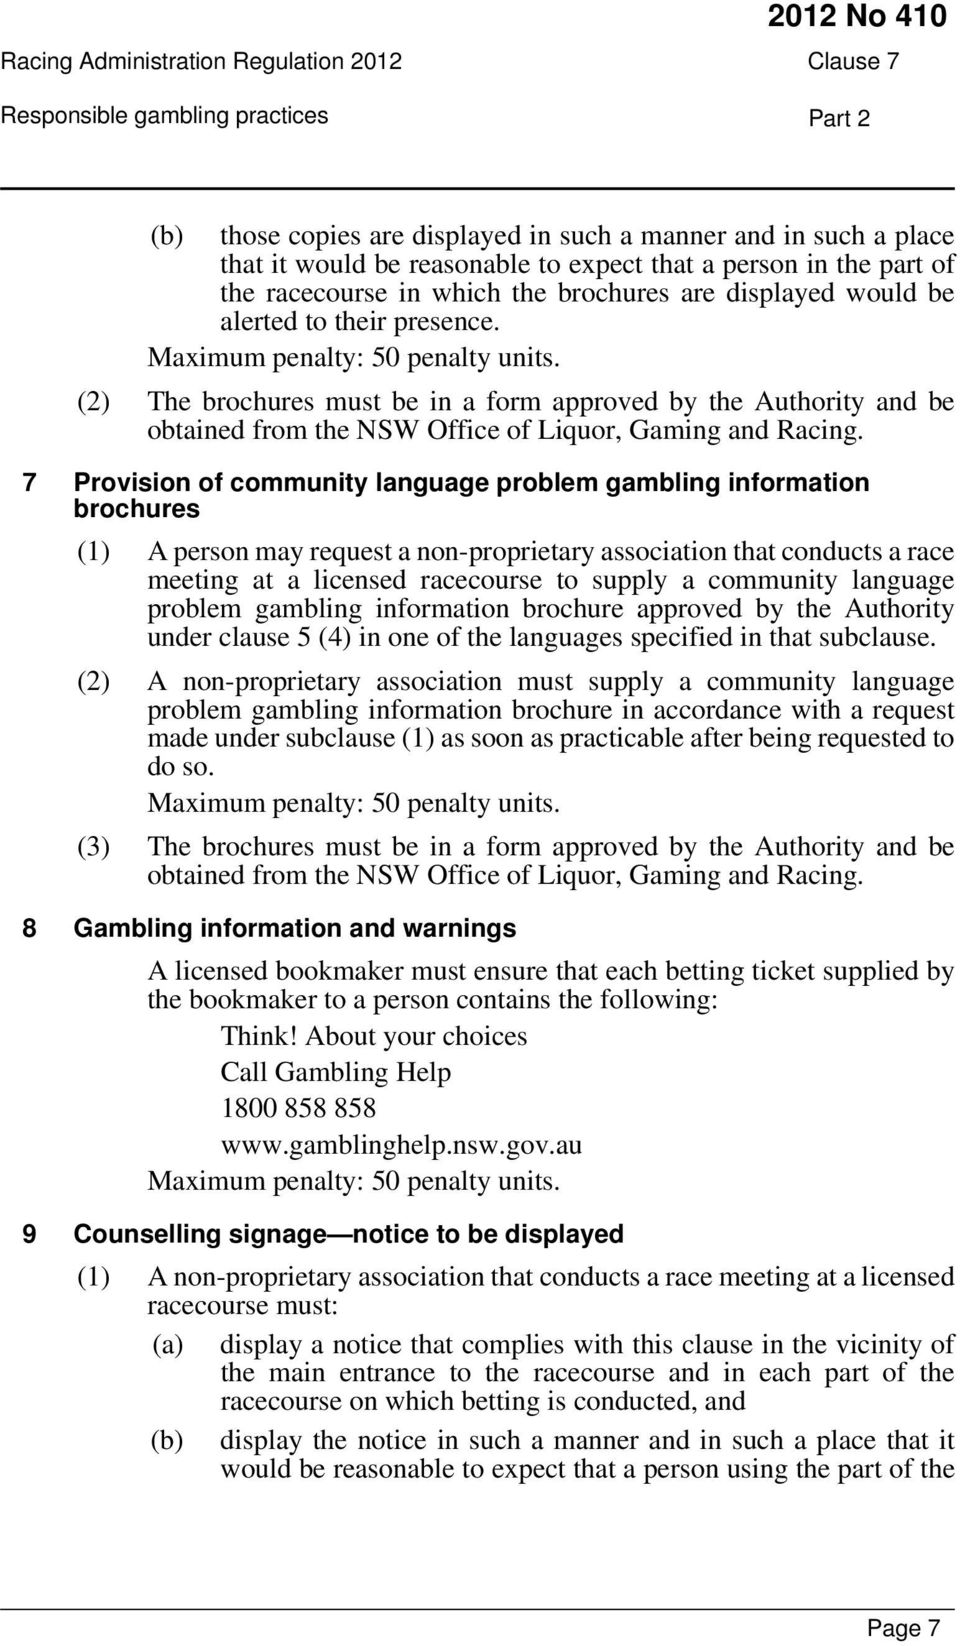 7 Provision of community language problem gambling information brochures (1) A person may request a non-proprietary association that conducts a race meeting at a licensed racecourse to supply a